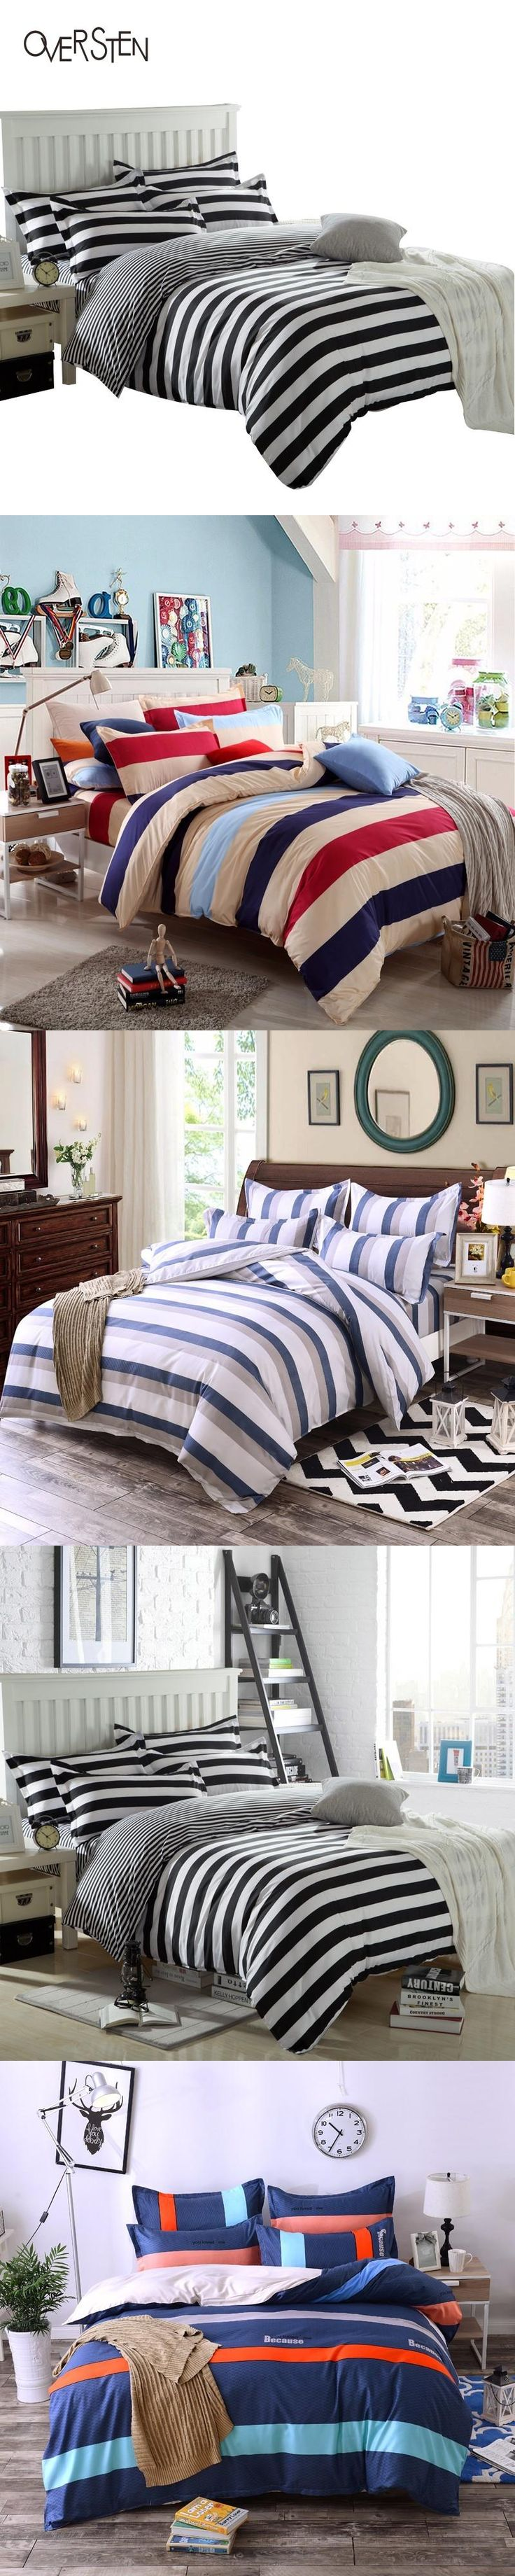 oversten brief style double single bedding set queen twin king size duvet cover set stripes pattern